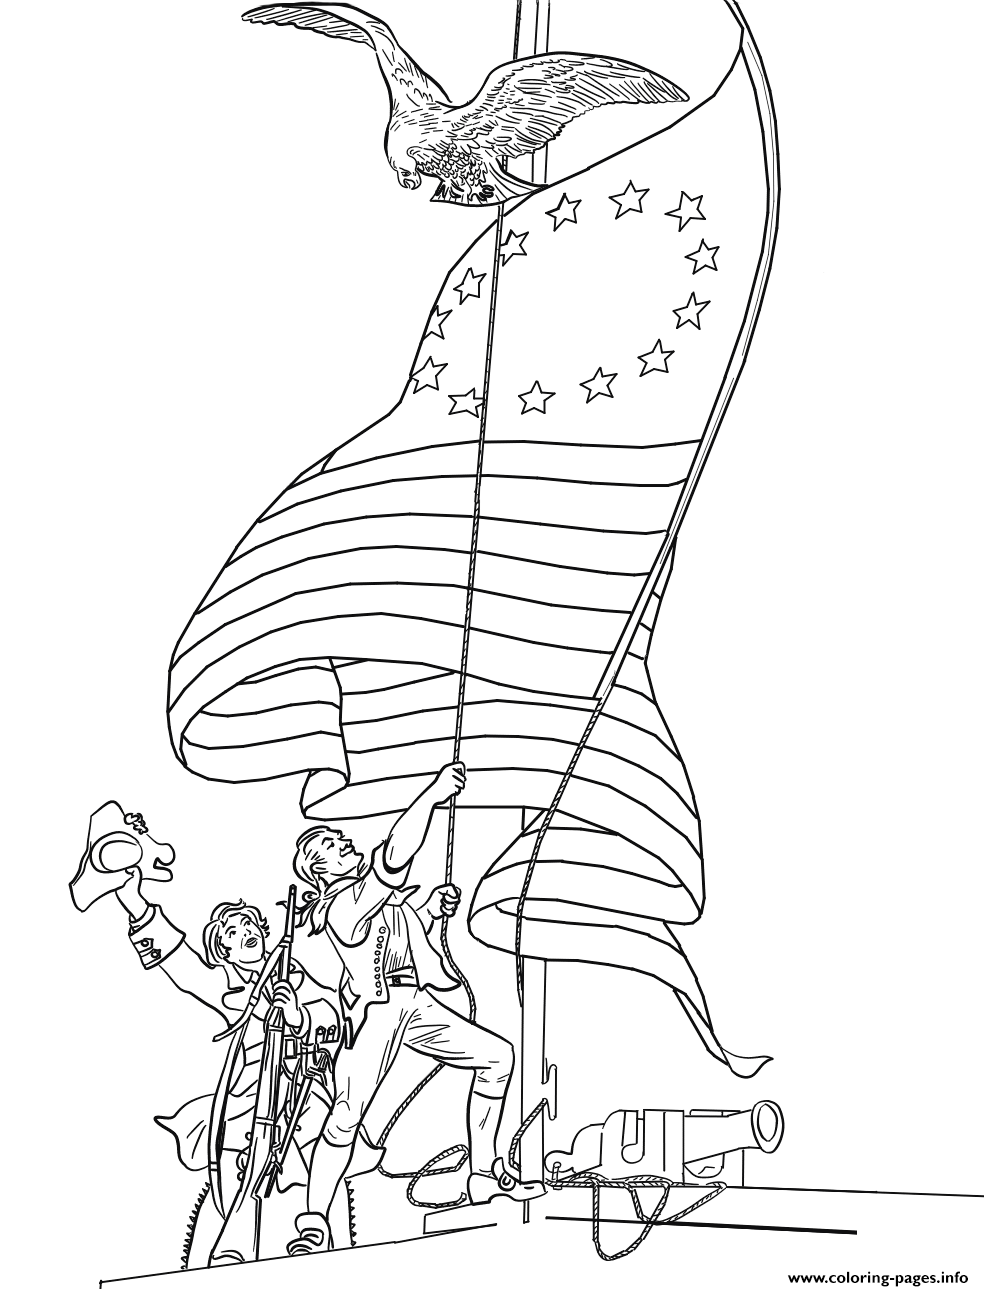 coloring pages : Patriots Coloring Pages Patriots Coloring ... | 1291x984